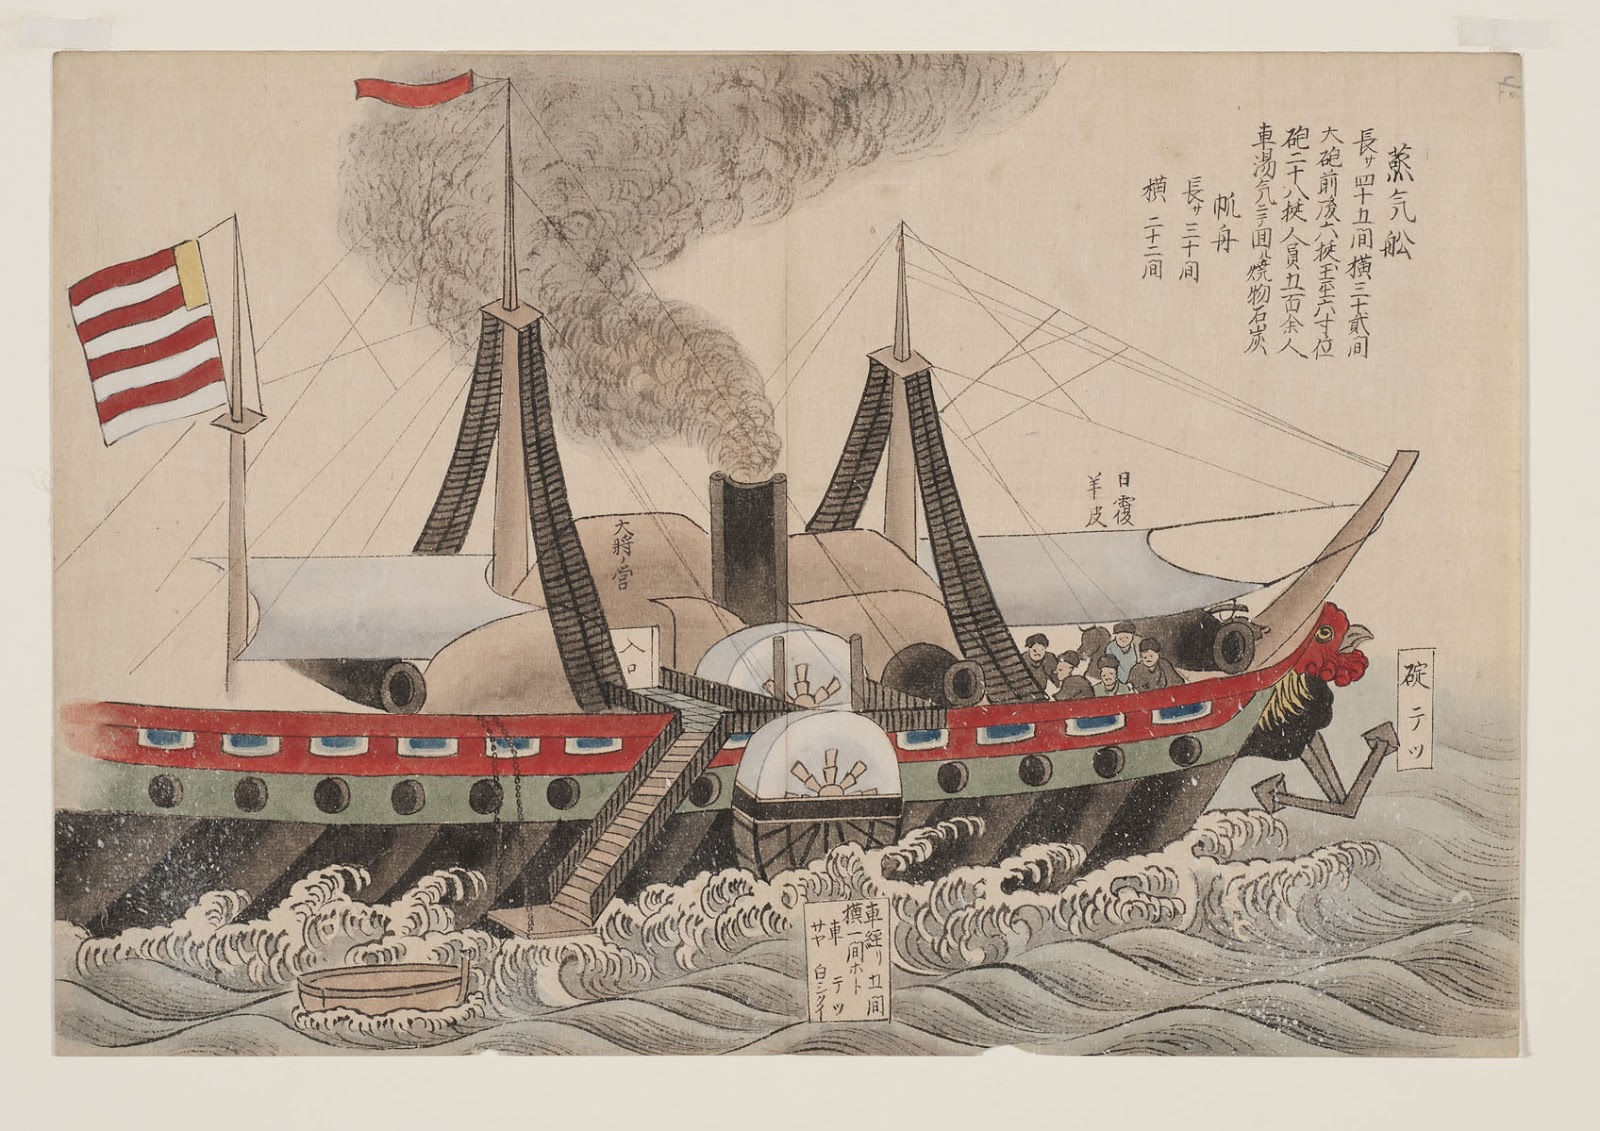 a history of the kanagawa treaty between the united states and japan On march 31, 1854, the convention of kanagawa (japanese: 神奈川条約, shinagawa jōyaku, or 日米和親条約,  see history of japan full text of the treaty can be found here ( ) see also the treaty of amity and commerce between the united states and japan, 1858 (the harris.